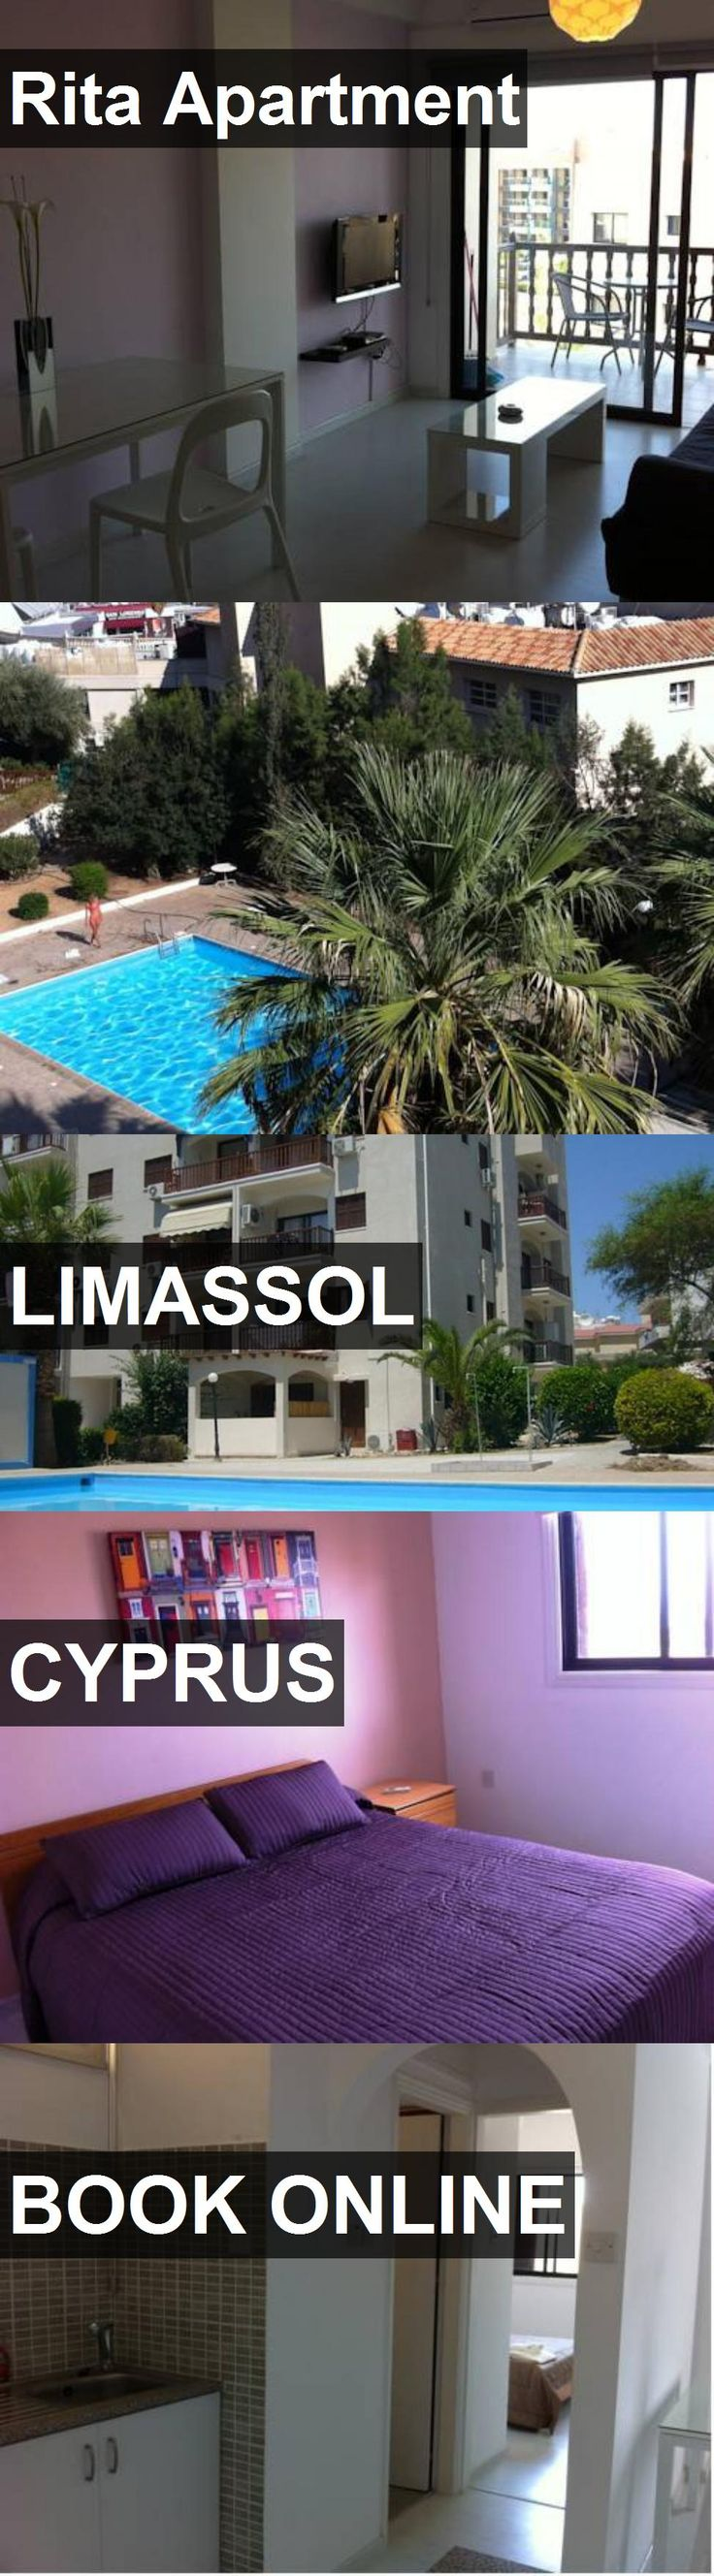 Rita Apartment in Limassol, Cyprus. For more information, photos, reviews and best prices please follow the link. #Cyprus #Limassol #travel #vacation #apartment